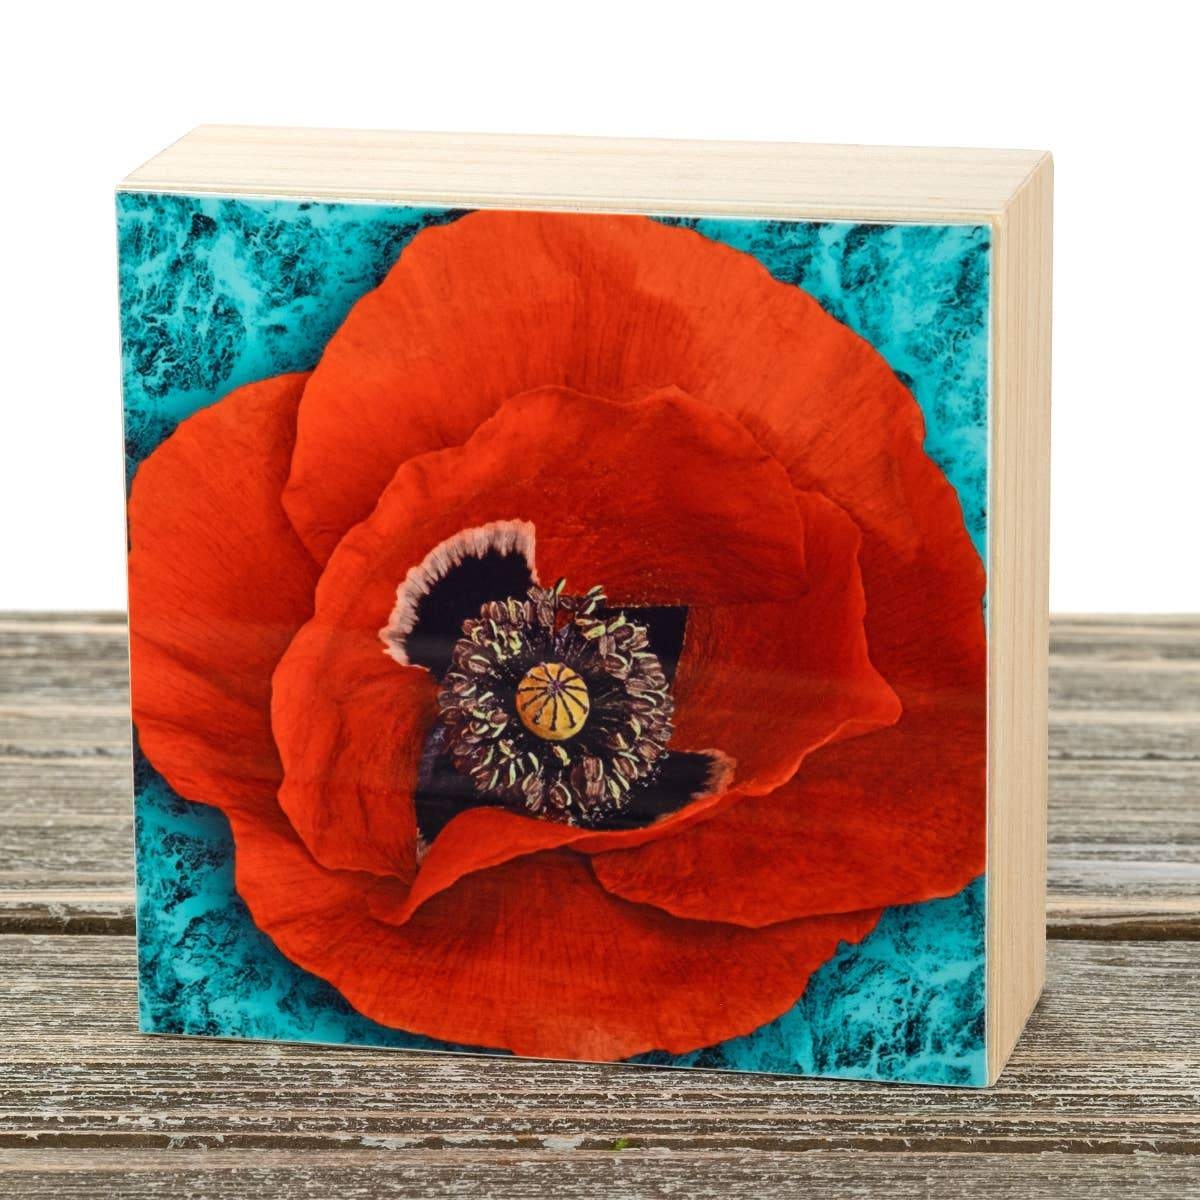 Poppy Aluminum Photo on Wood Block art print ANVIL metals studio